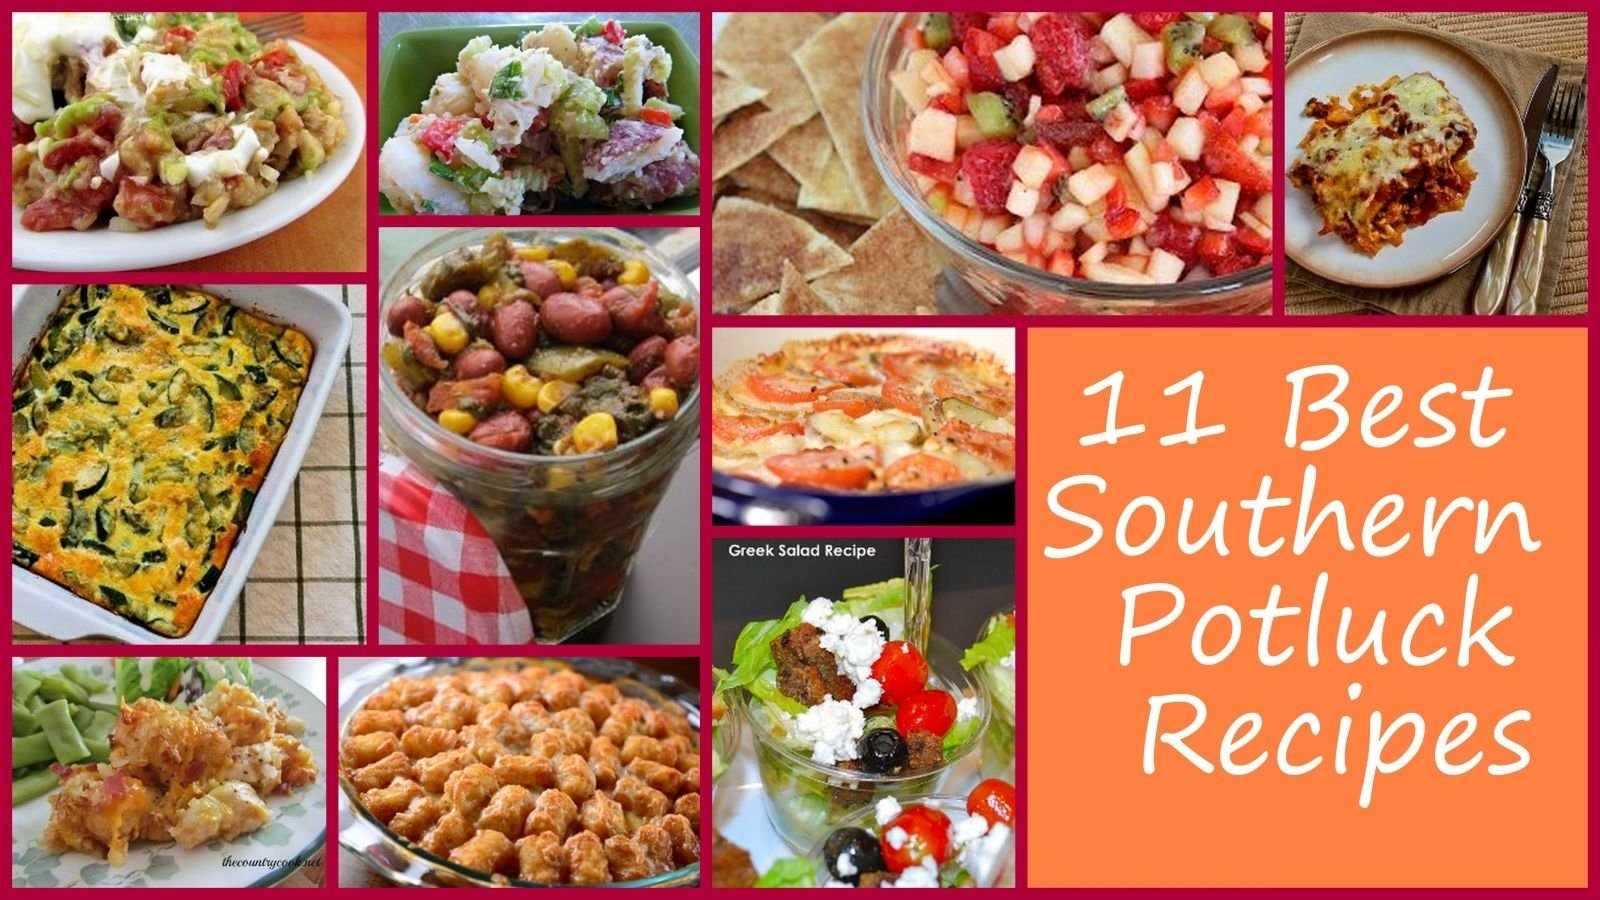 10 Cute Potluck Lunch Ideas For Work 11 best southern potluck recipes favehealthyrecipes 2021